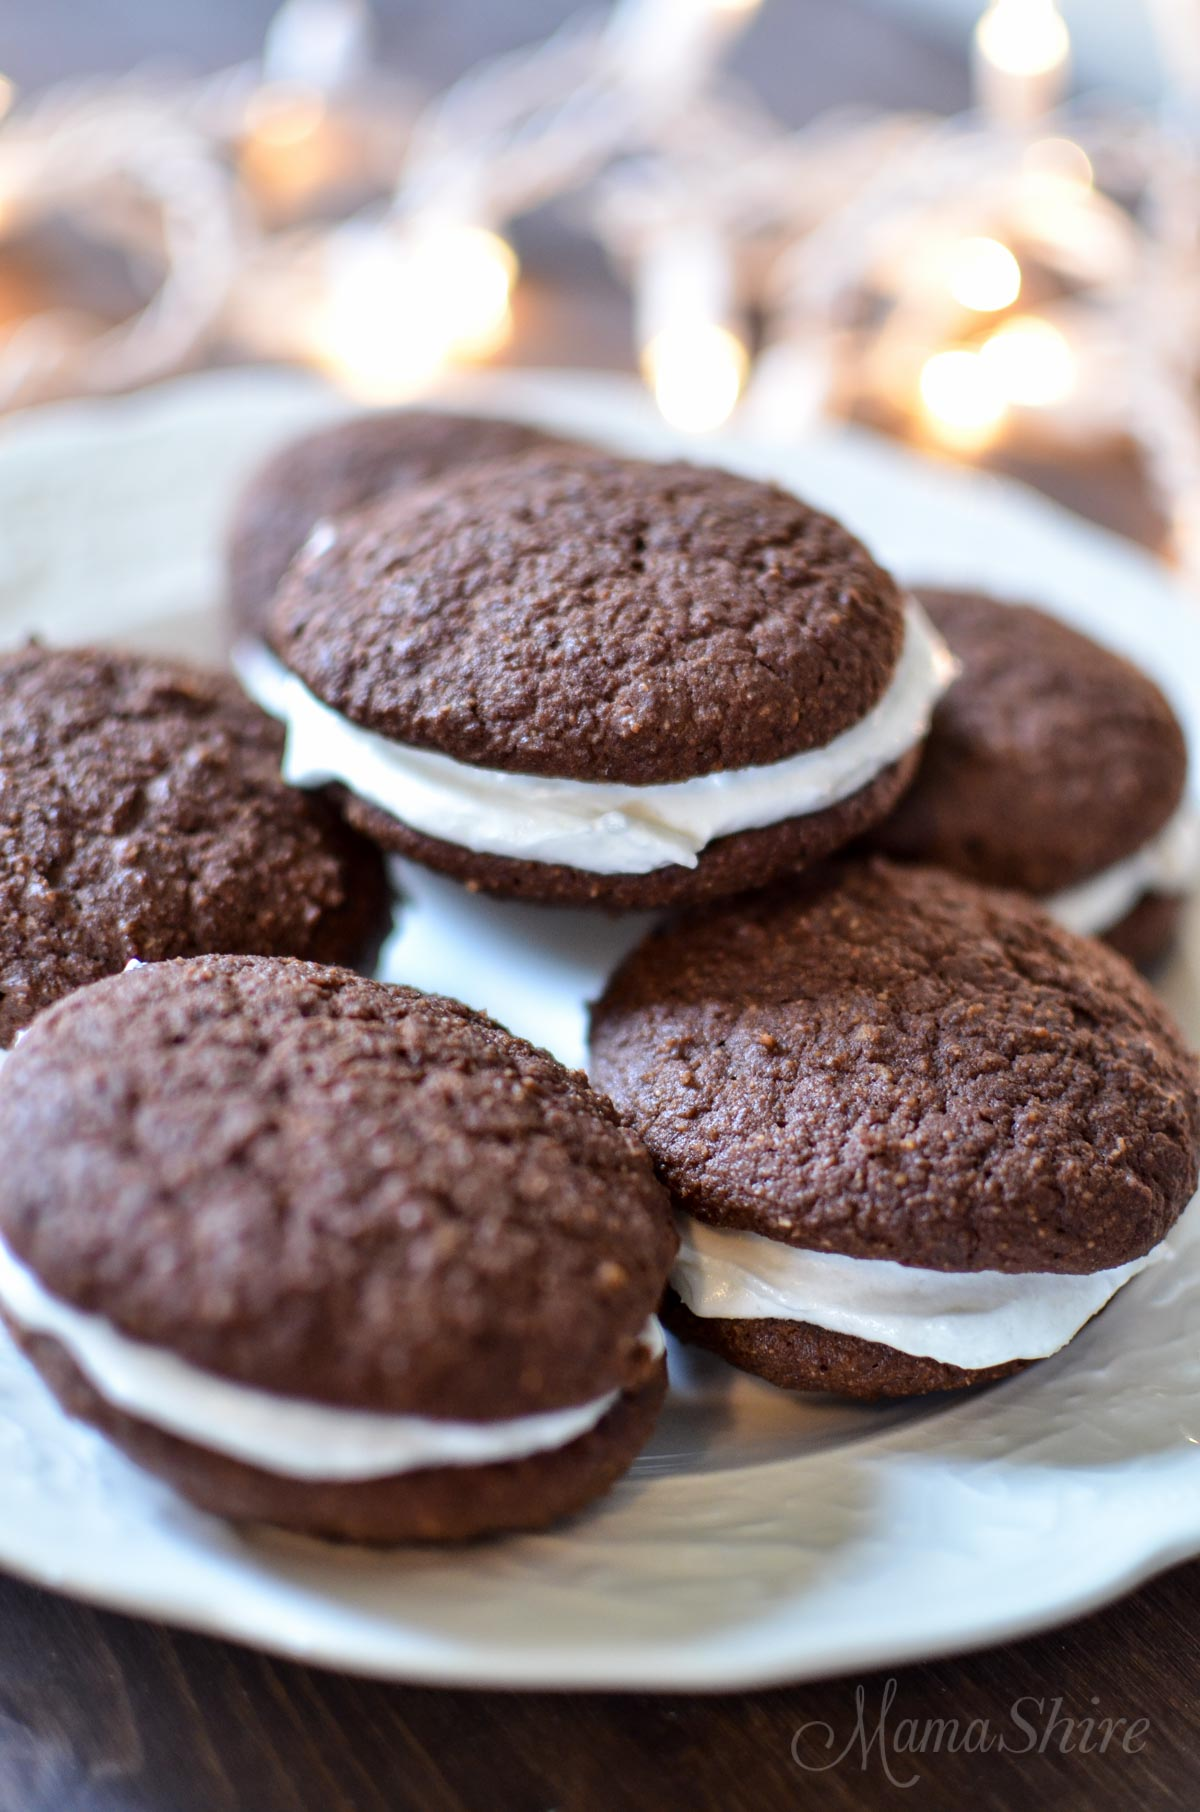 Peppermint Whoopie Pies - Gluten Free, Dairy Free, Sugar Free - MamaShire.com